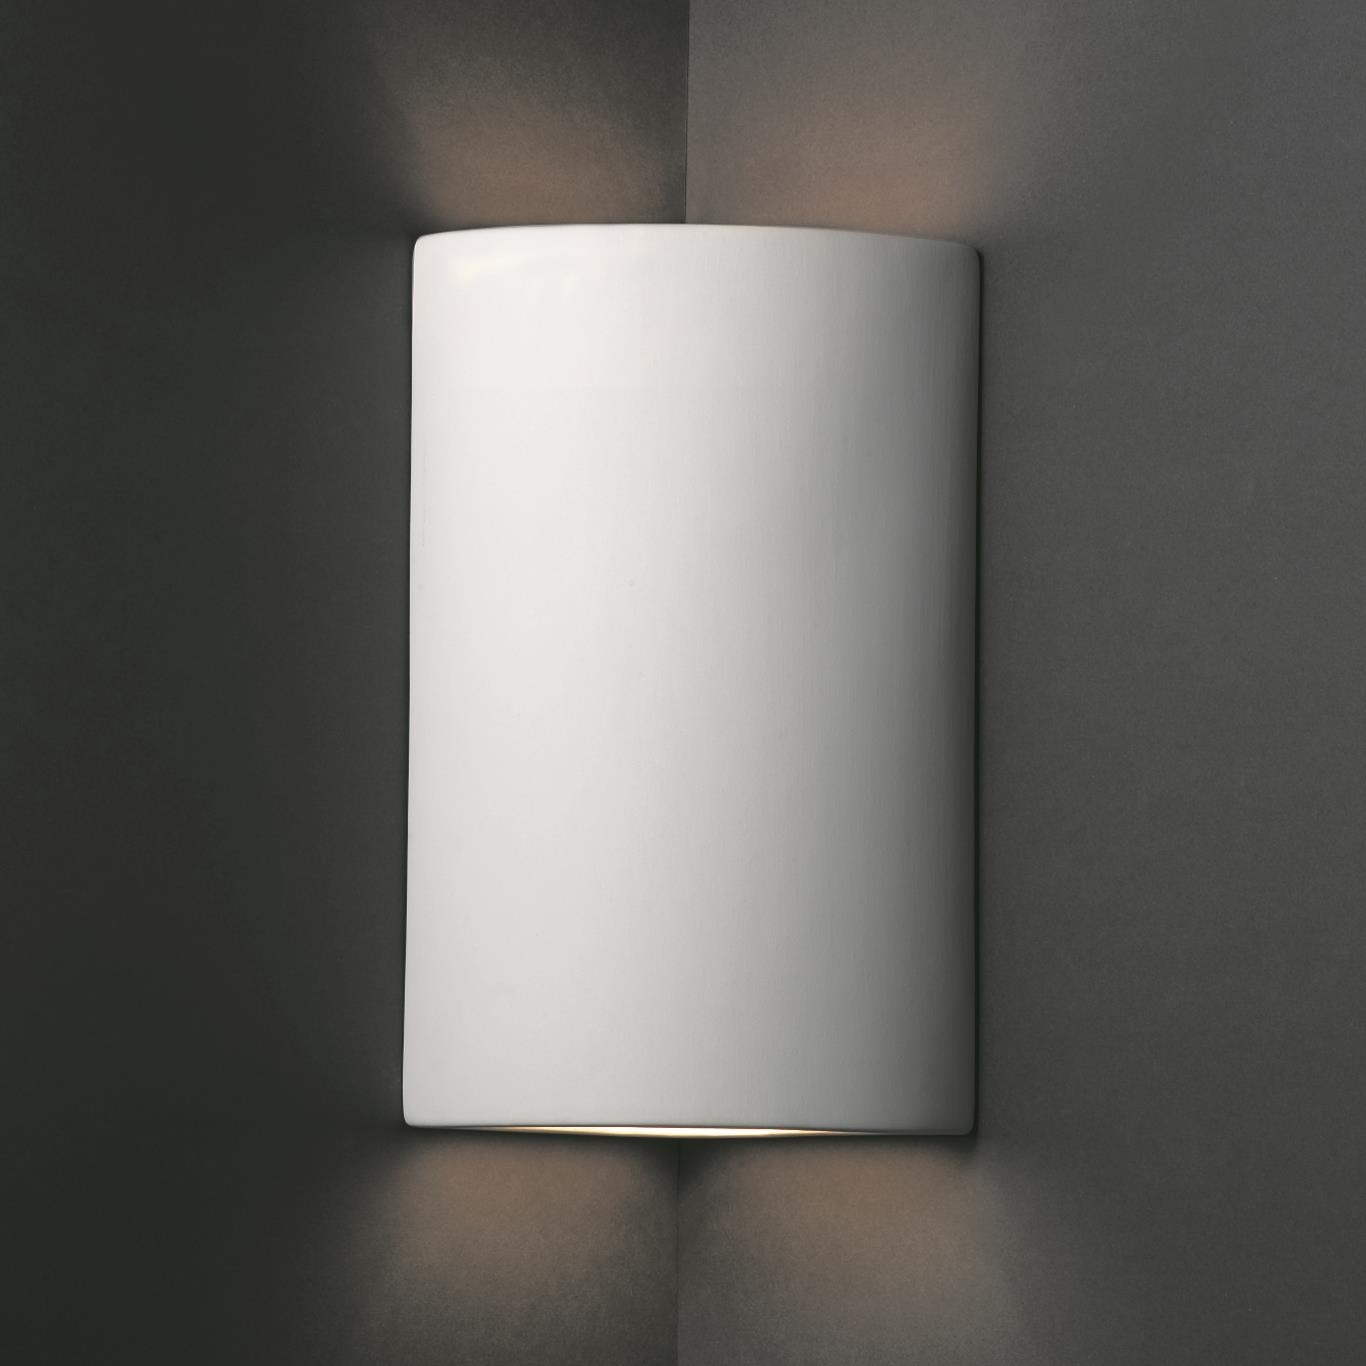 Corner Wall Light Outdoor On With Hd Resolution 1200X1200 Pixels Regarding Outdoor Corner Wall Lighting (#1 of 15)